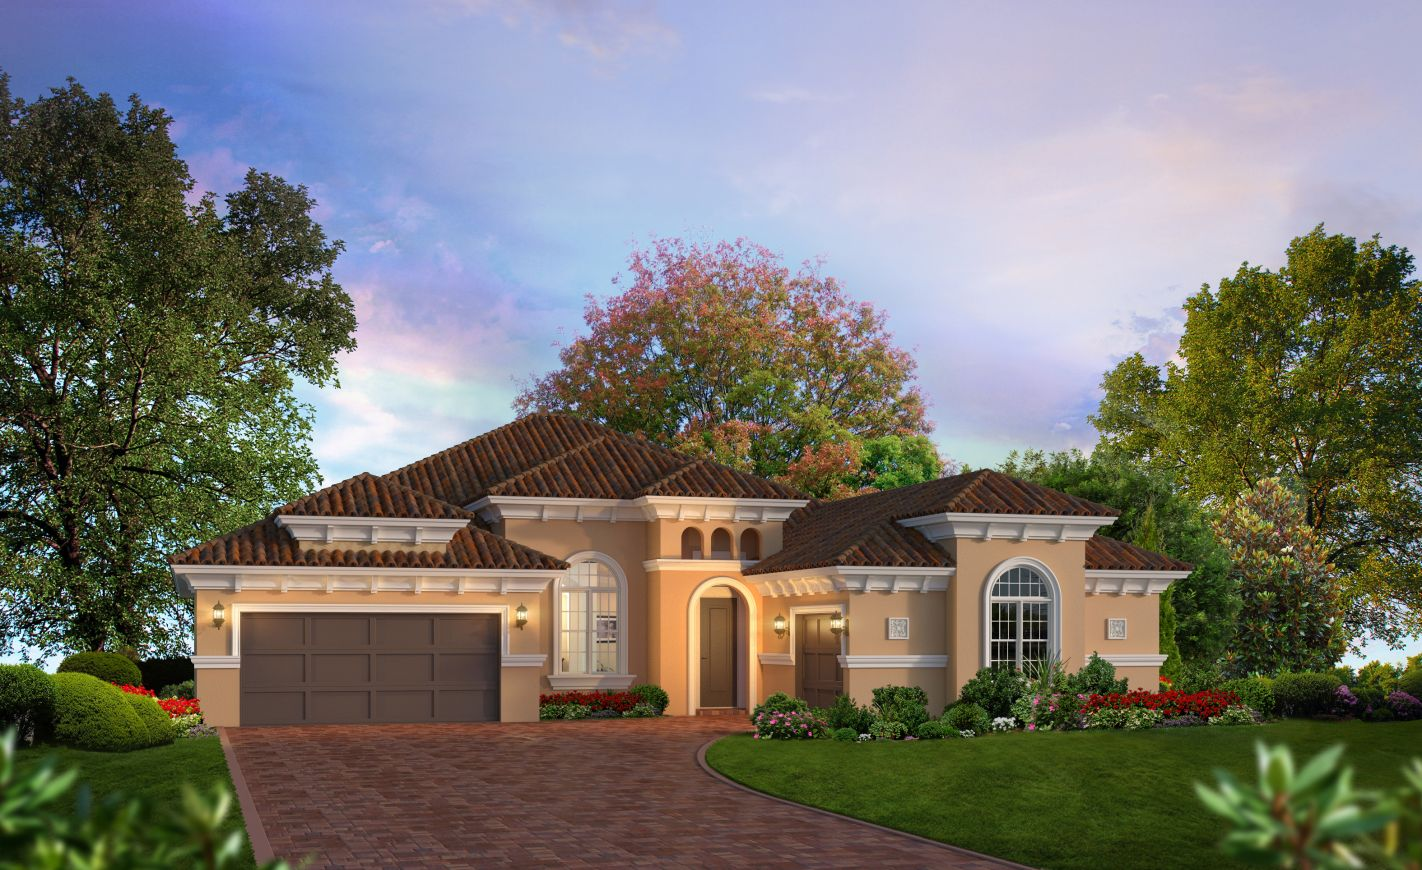 Palm Coast Homes for Sale - The Cameron at The Conservatory